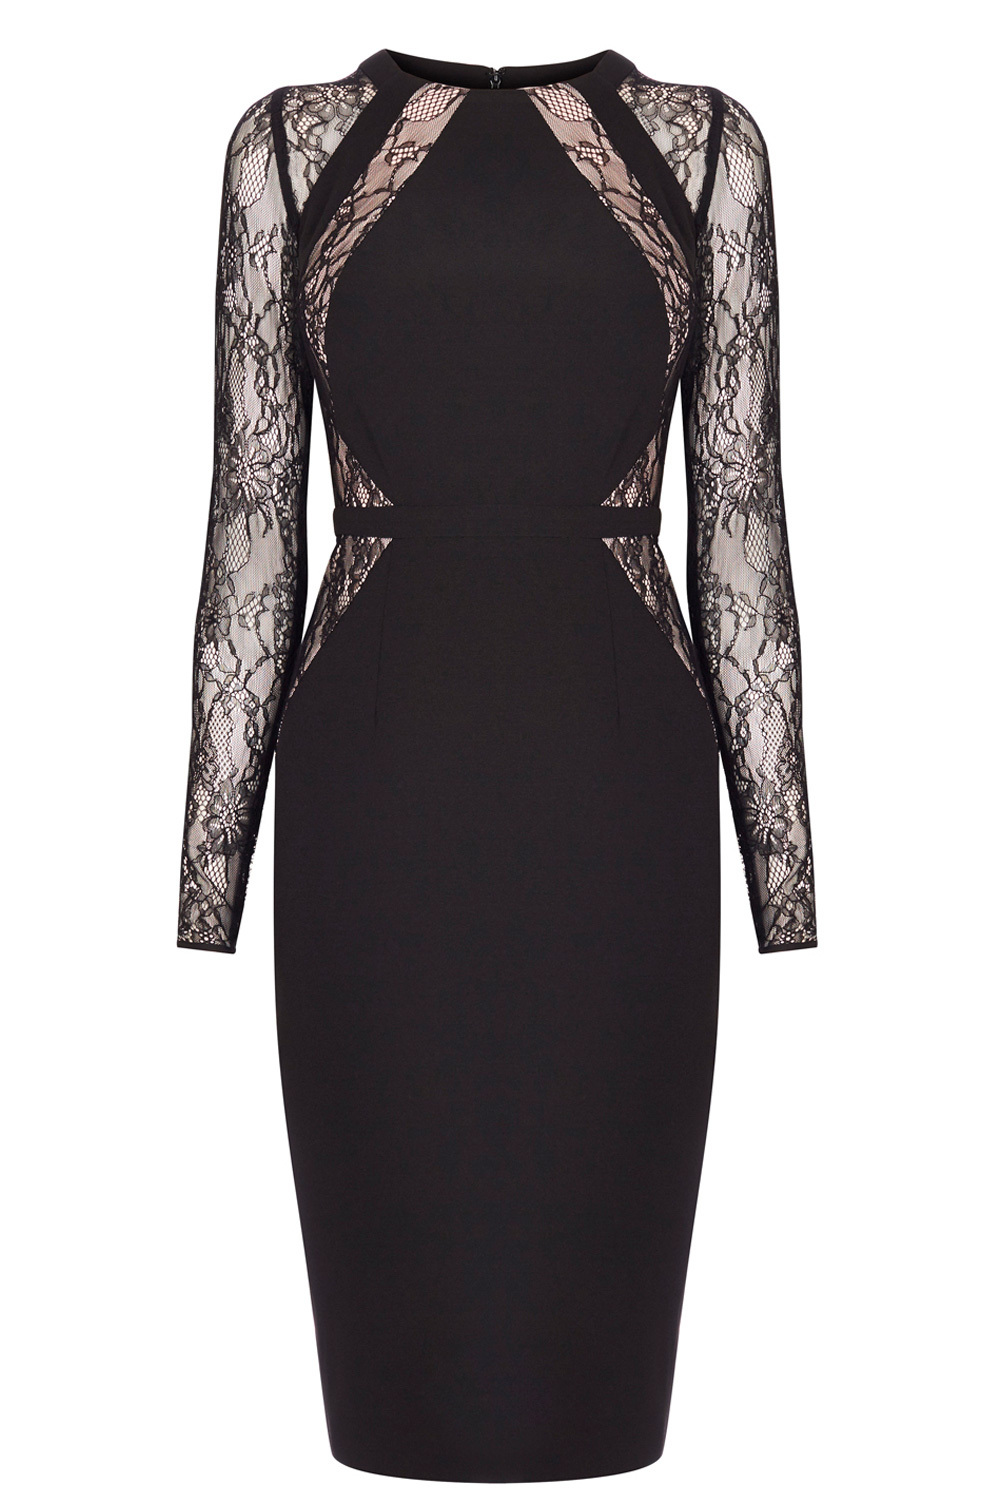 Leonoria Lace Panel Dress Sl - fit: tight; style: bodycon; bust detail: sheer at bust; predominant colour: black; occasions: evening; length: on the knee; fibres: polyester/polyamide - stretch; neckline: crew; waist detail: cut out detail; sleeve length: long sleeve; sleeve style: standard; texture group: jersey - clingy; pattern type: fabric; pattern: patterned/print; embellishment: lace; shoulder detail: sheer at shoulder; season: a/w 2016; wardrobe: event